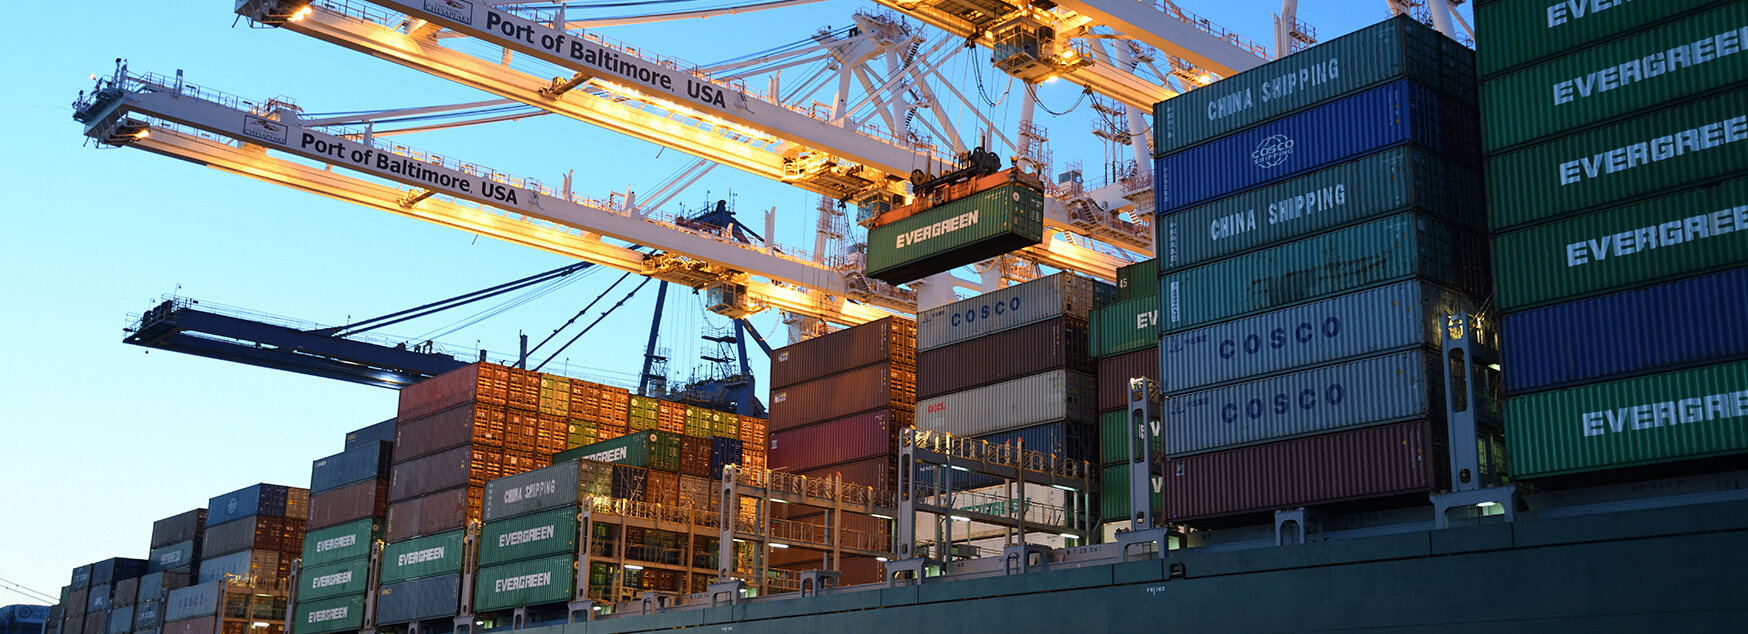 Shipping containers representing sea freight